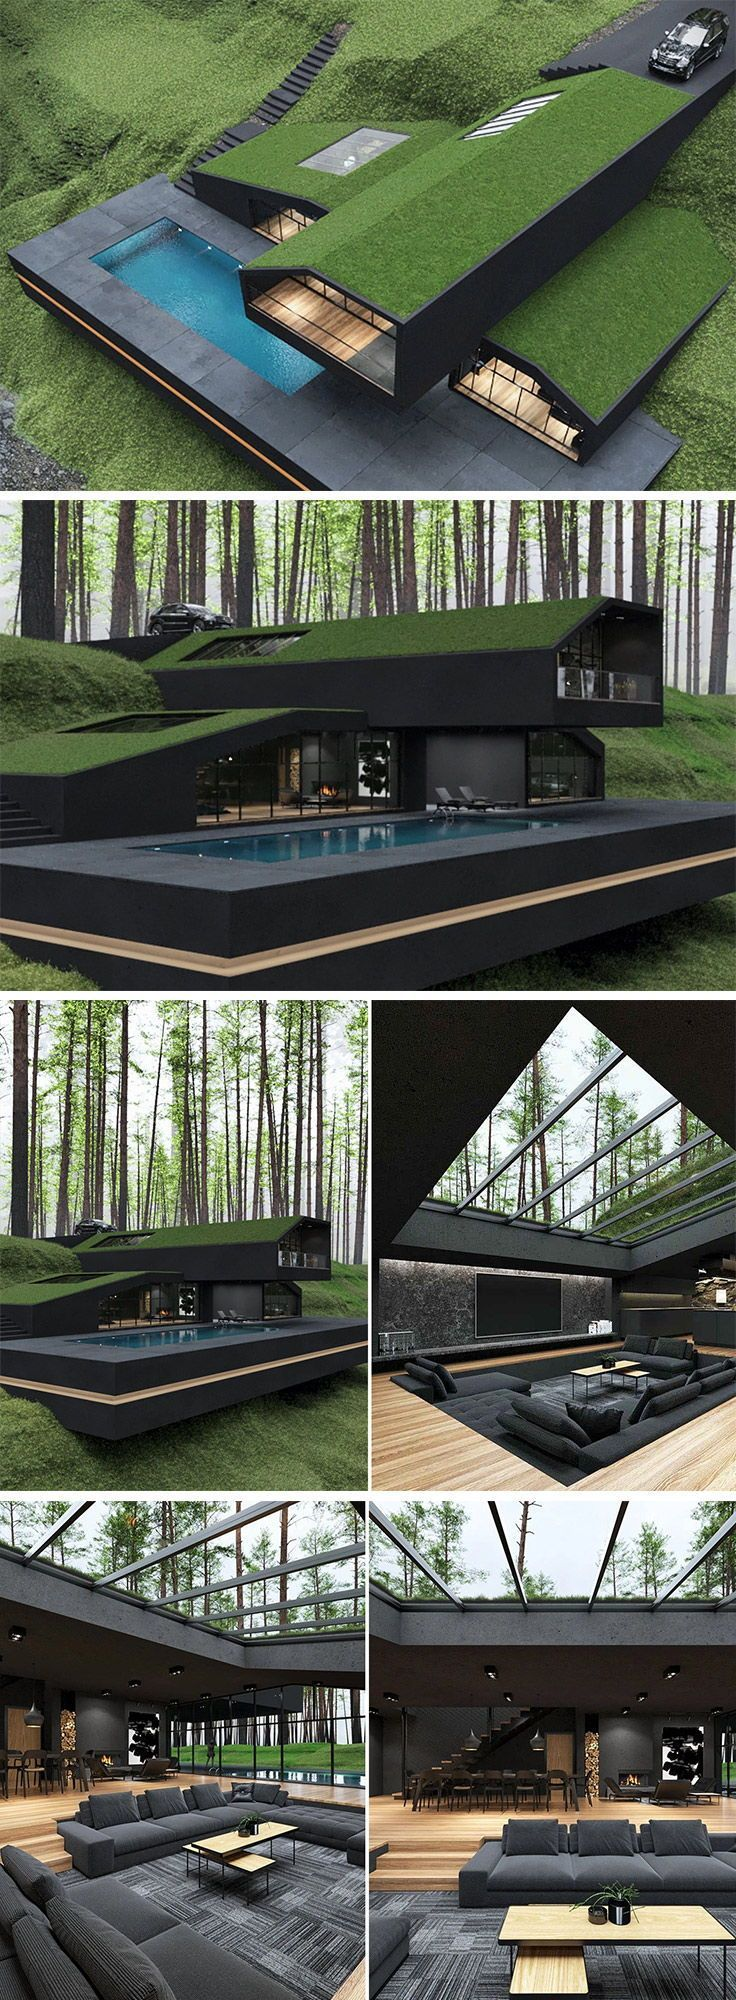 This grass roof villa could start a new trend in modern architecture